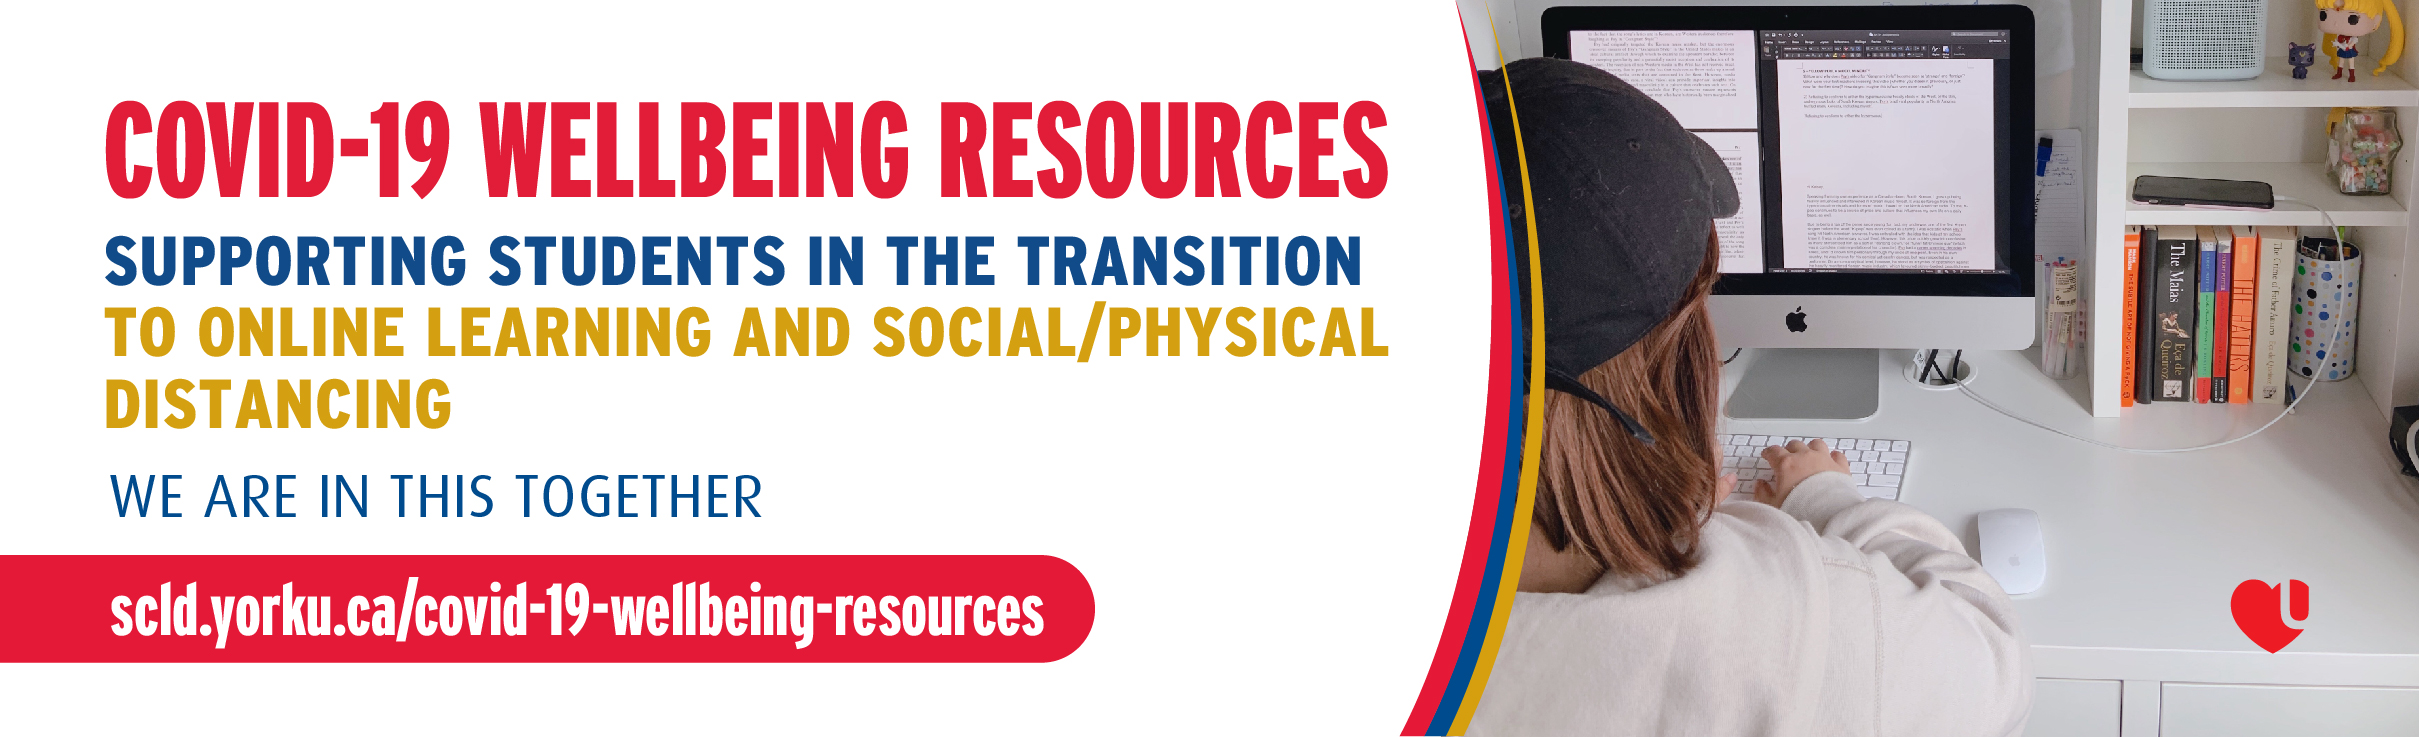 COVID-19 Wellbeing Resources